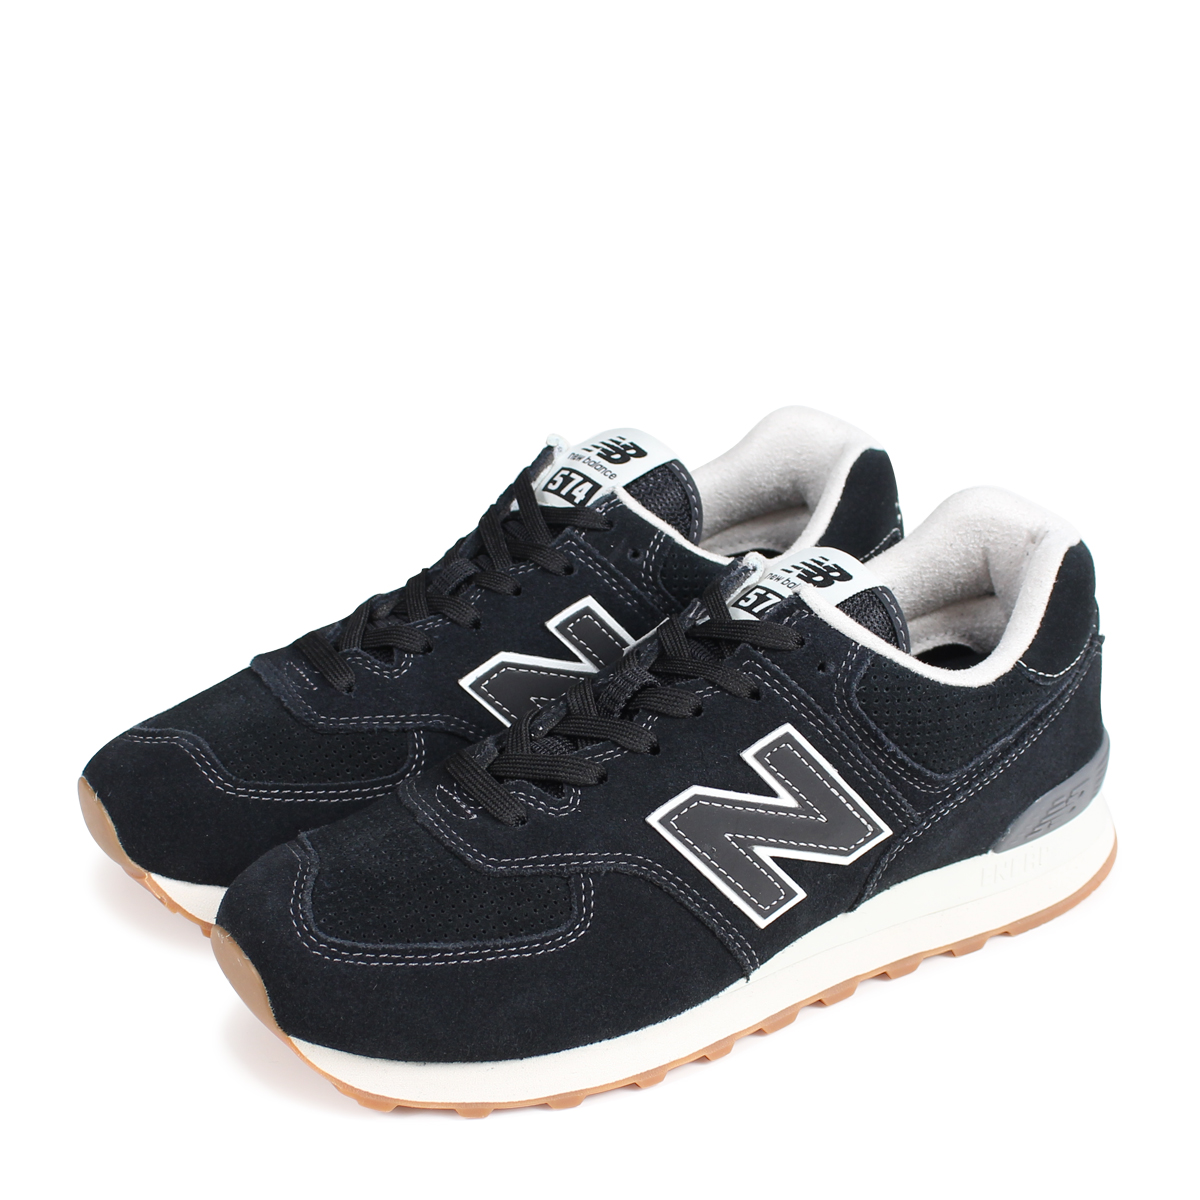 save off caf5c ac2a2 new balance ML574ESE New Balance 574 men's sneakers D Wise black [189]